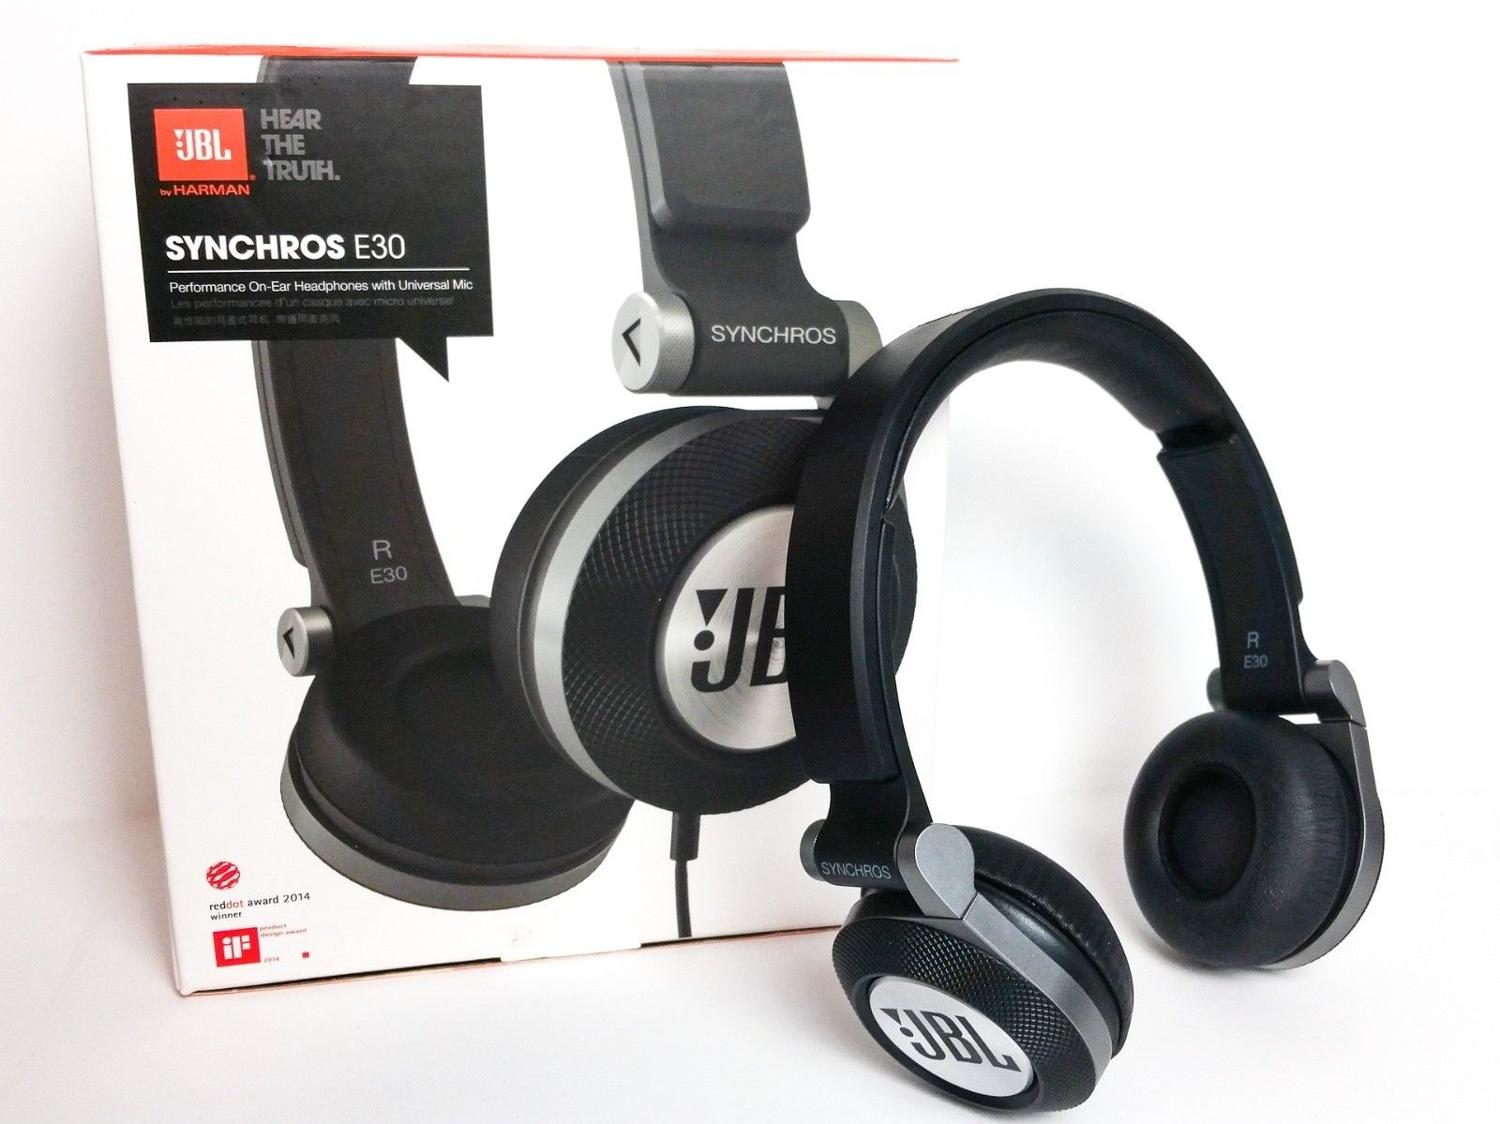 Find More New Jbl Wired Headphones E30 For Sale At Up To 90 Off Headset Synchros